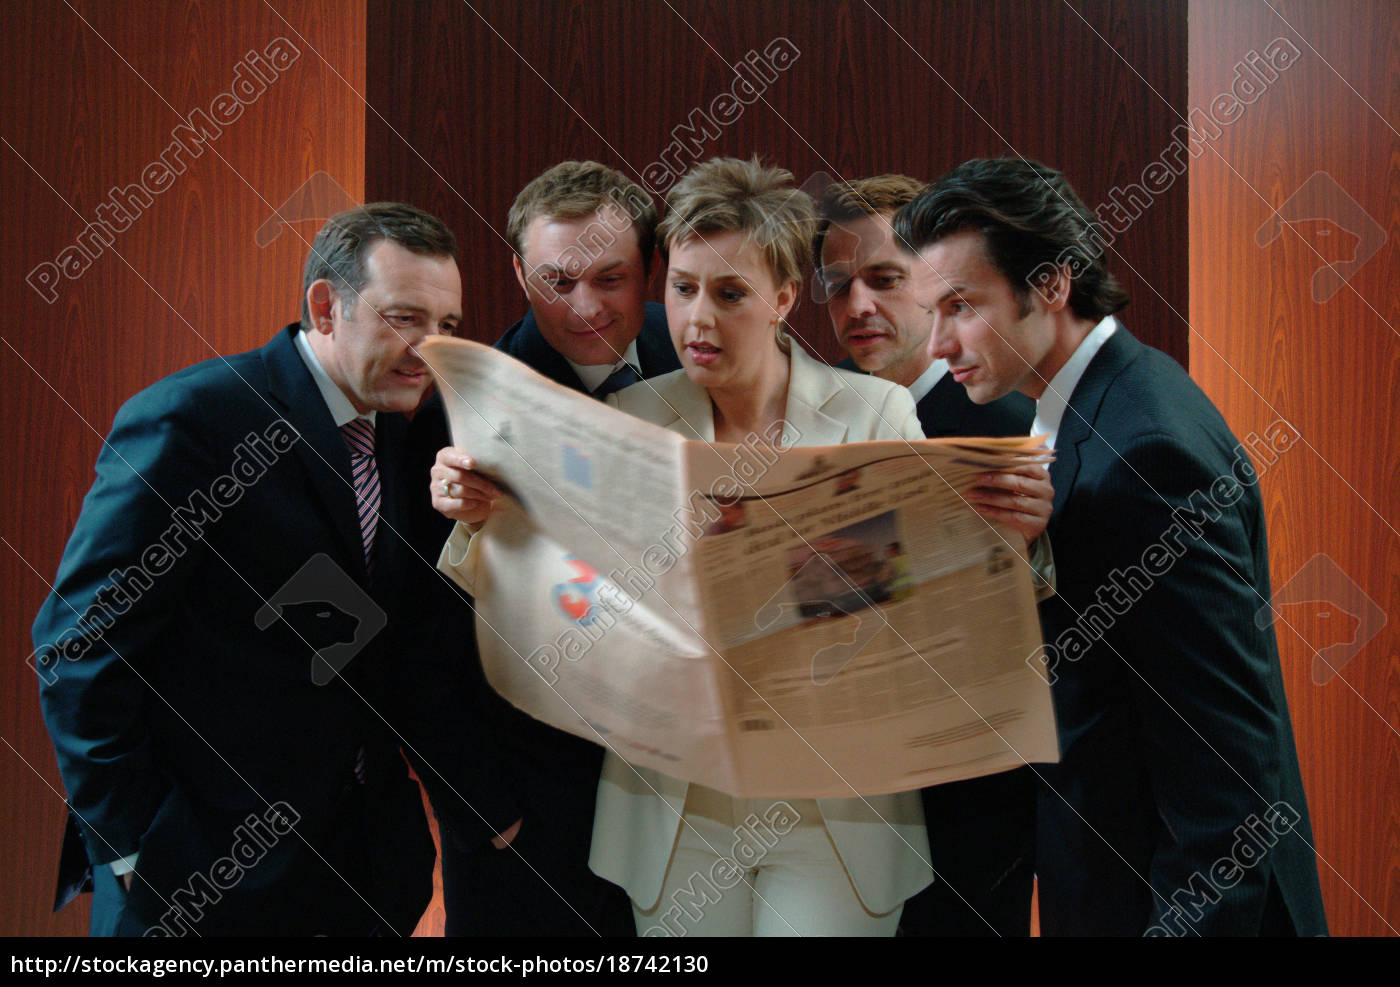 business, people, reading, paper - 18742130